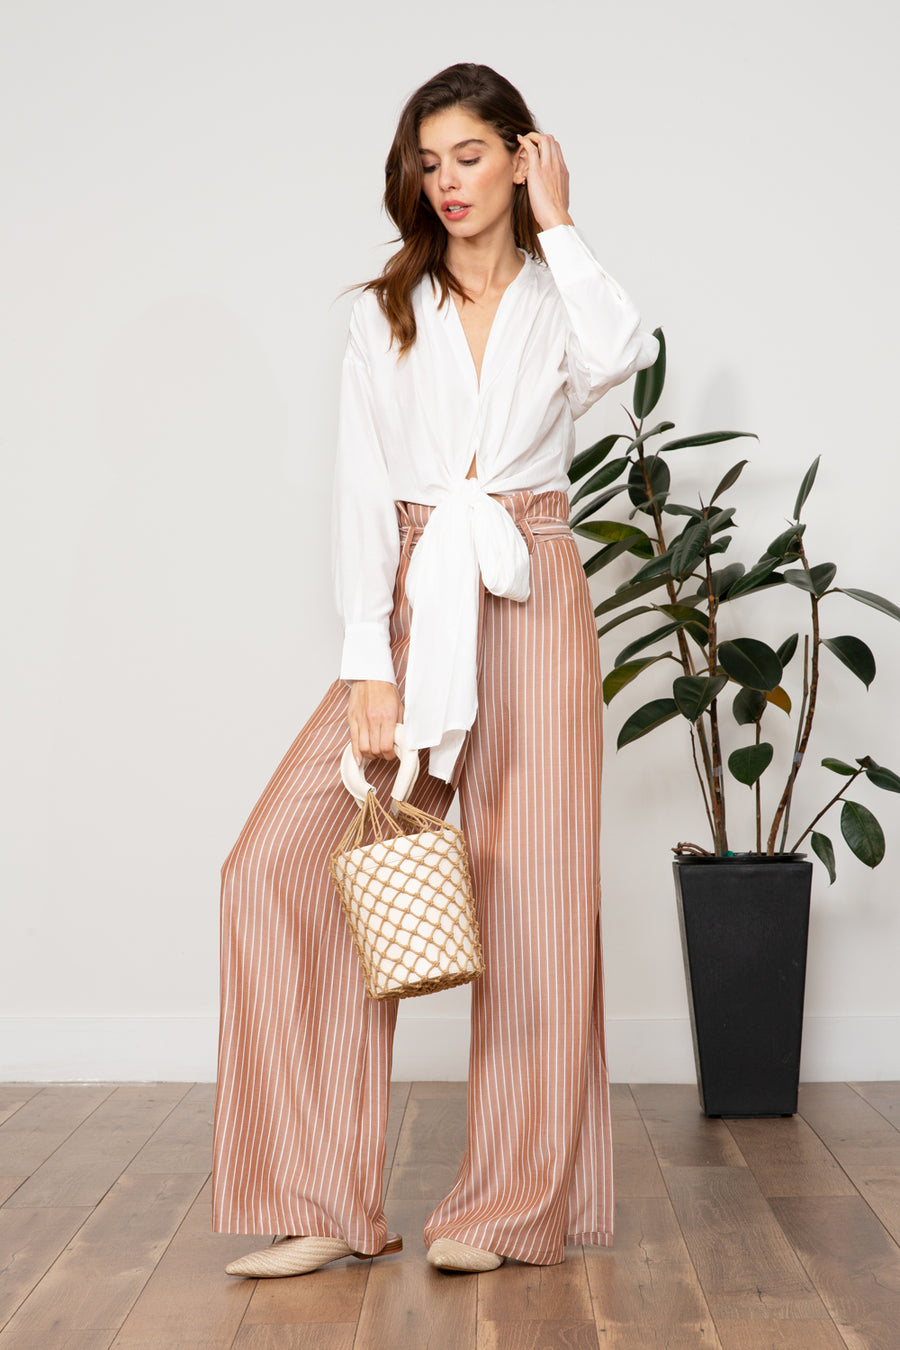 Lucy Paris - Imogen Striped Pant - Tan